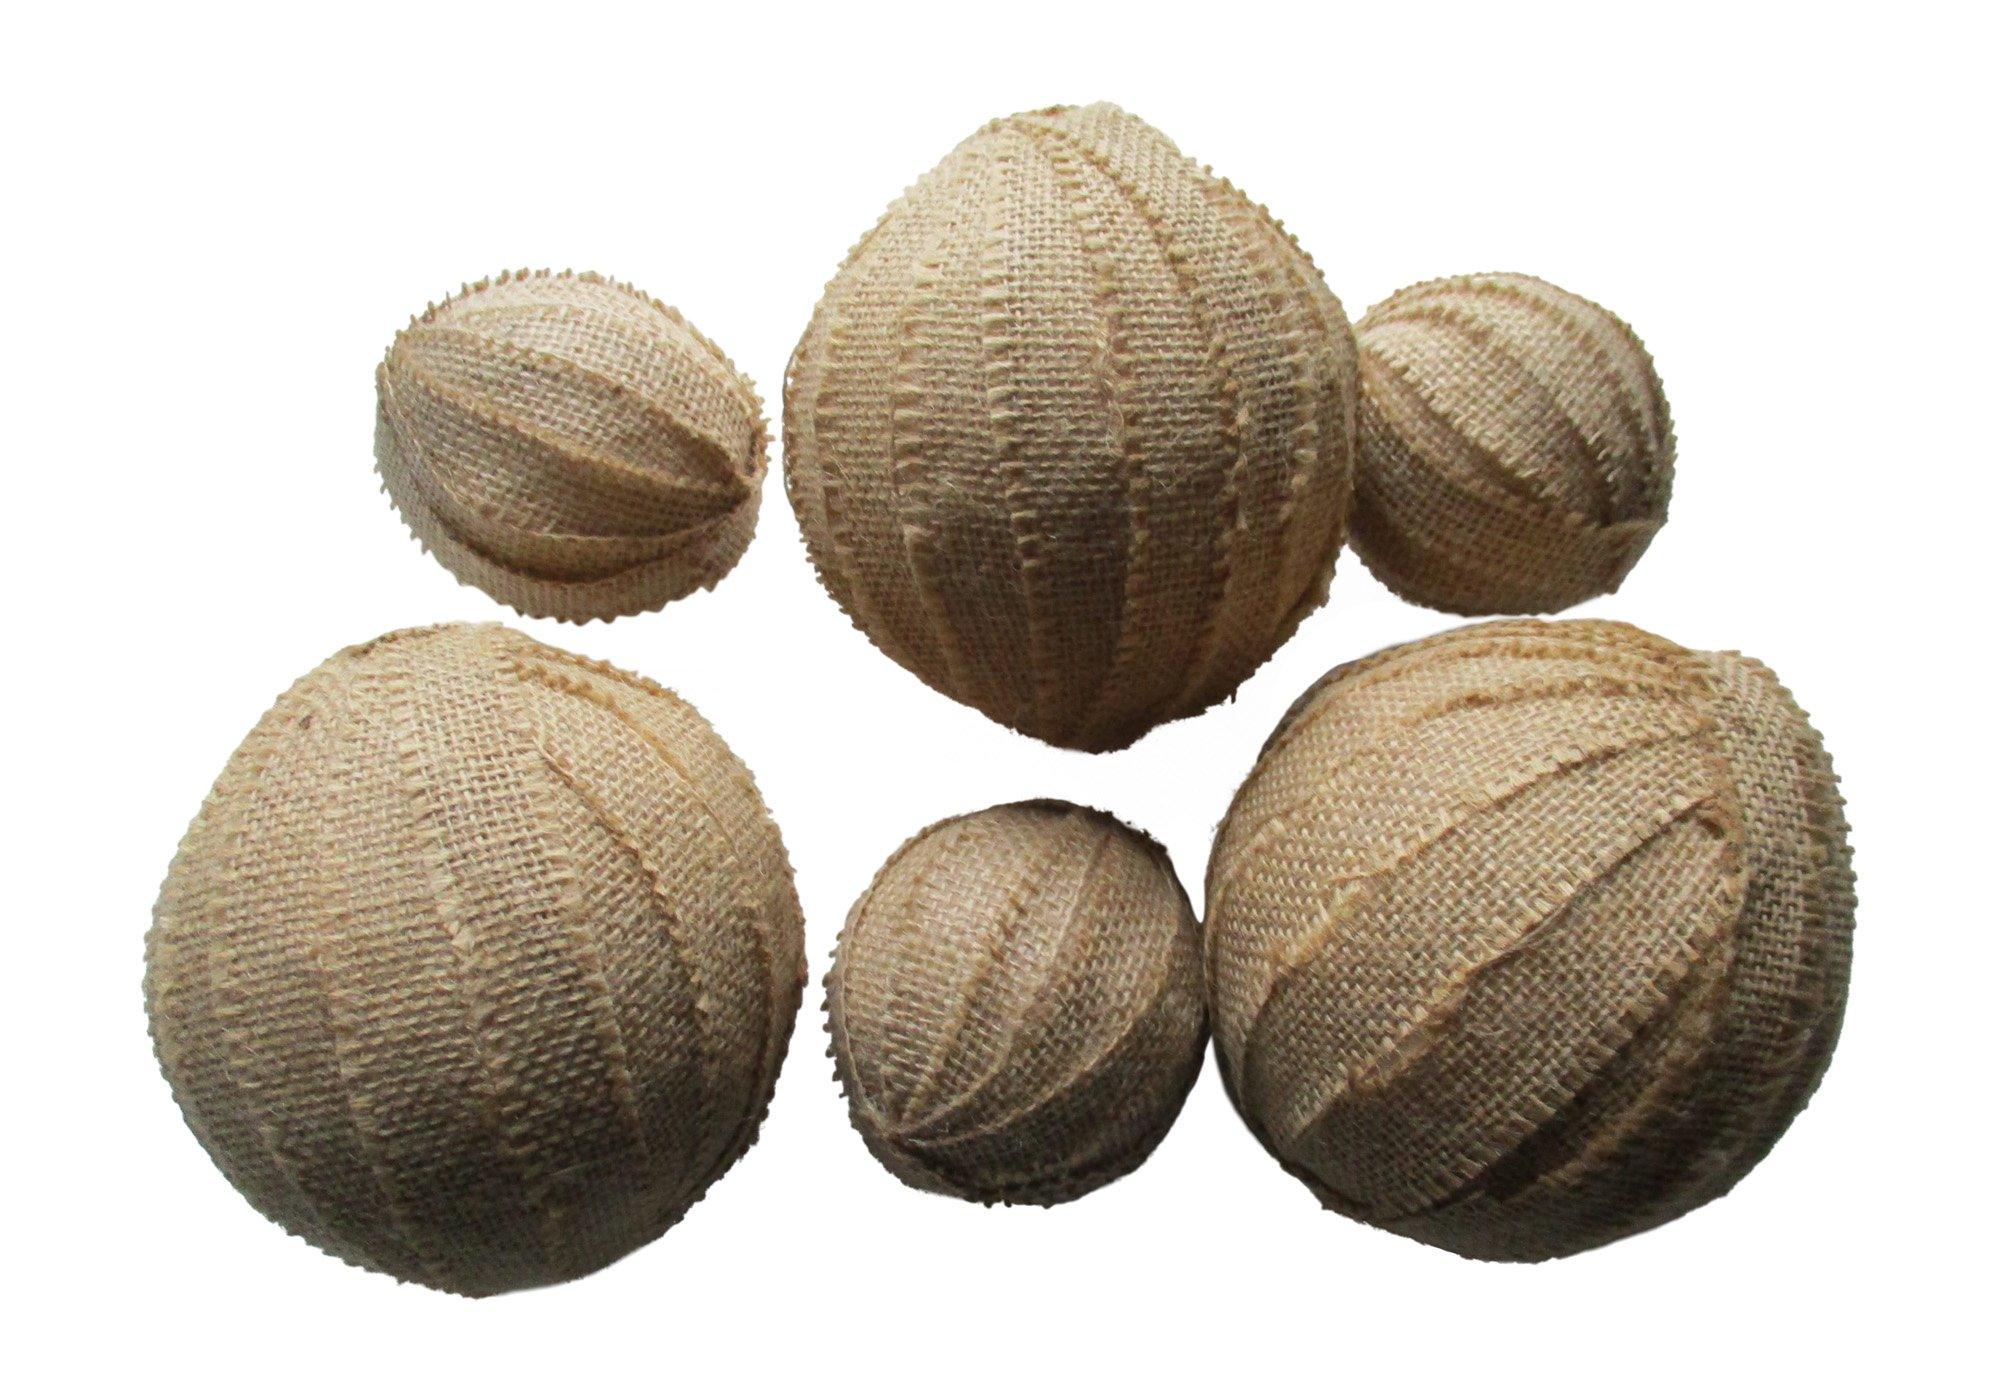 From The Attic Crafts Burlap Rag Balls Decorative Bowl Fillers 4 inch and 2.5 inch set of 6 by From The Attic Crafts (Image #2)